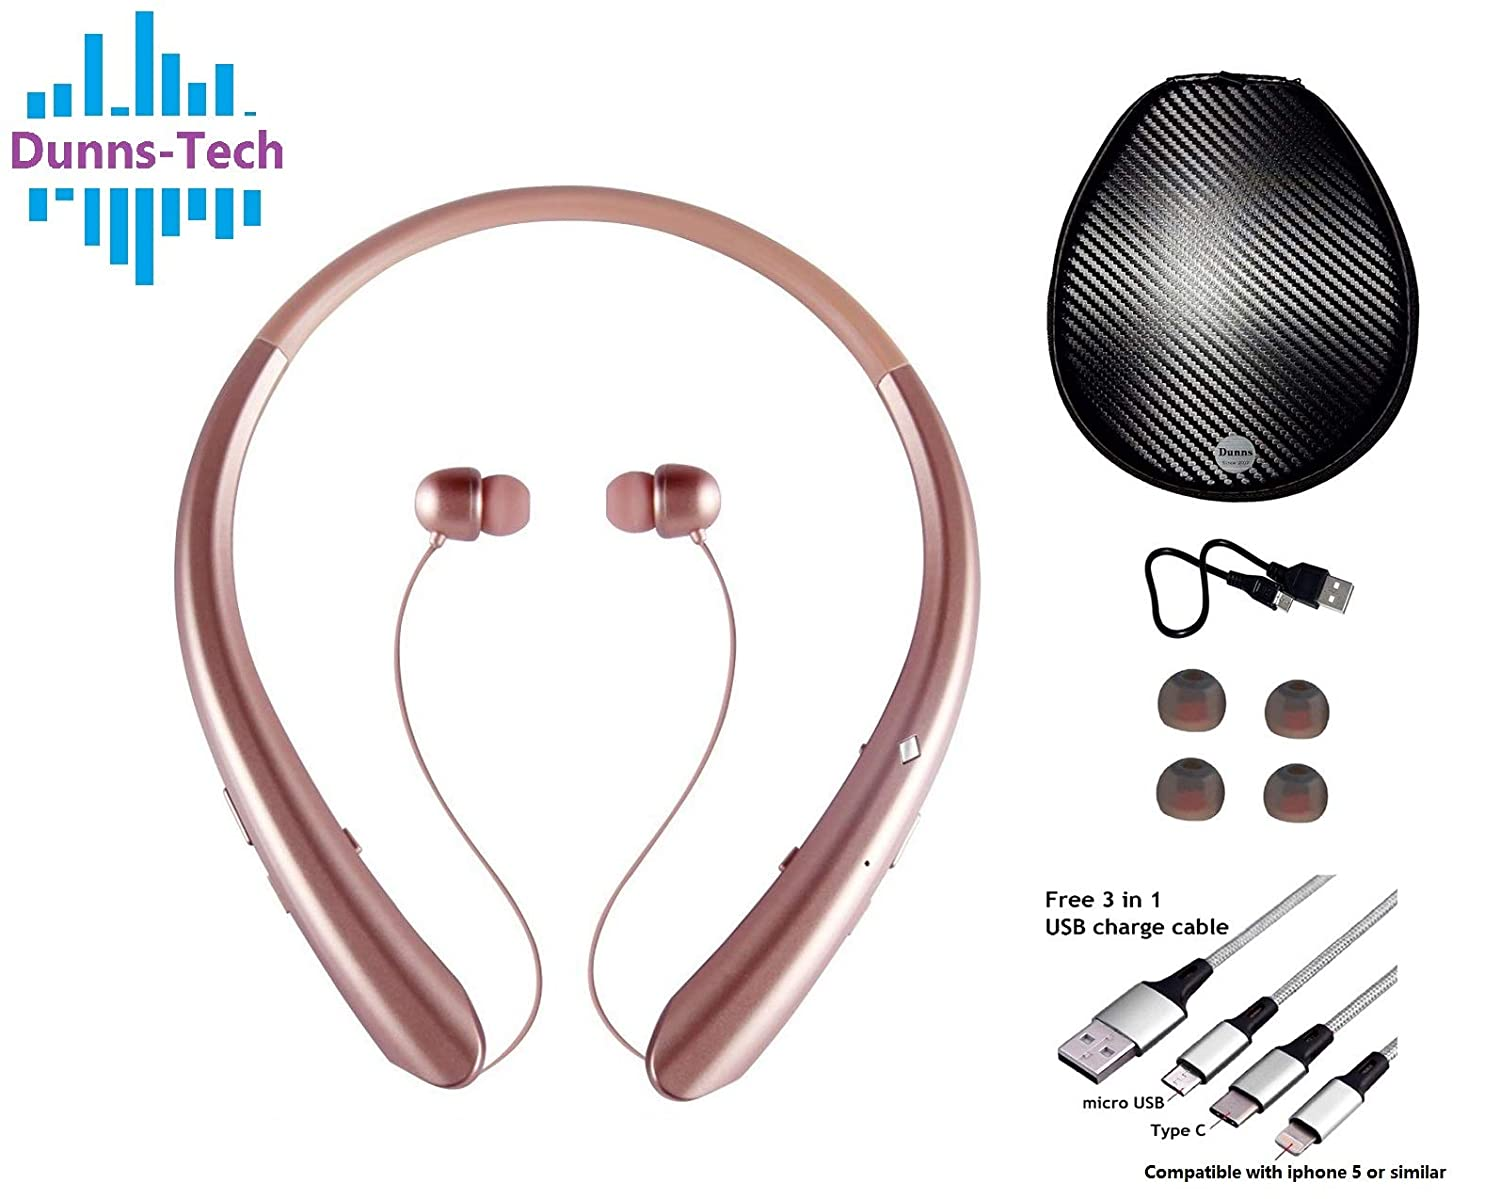 969a09f4d19 Dunn's Bluetooth Neckband Headphones with Retractable Earbuds, HD Stereo Wireless  Headsets with Microphone, vibrator alert | Free 3-in-1 multi-function USB  ...